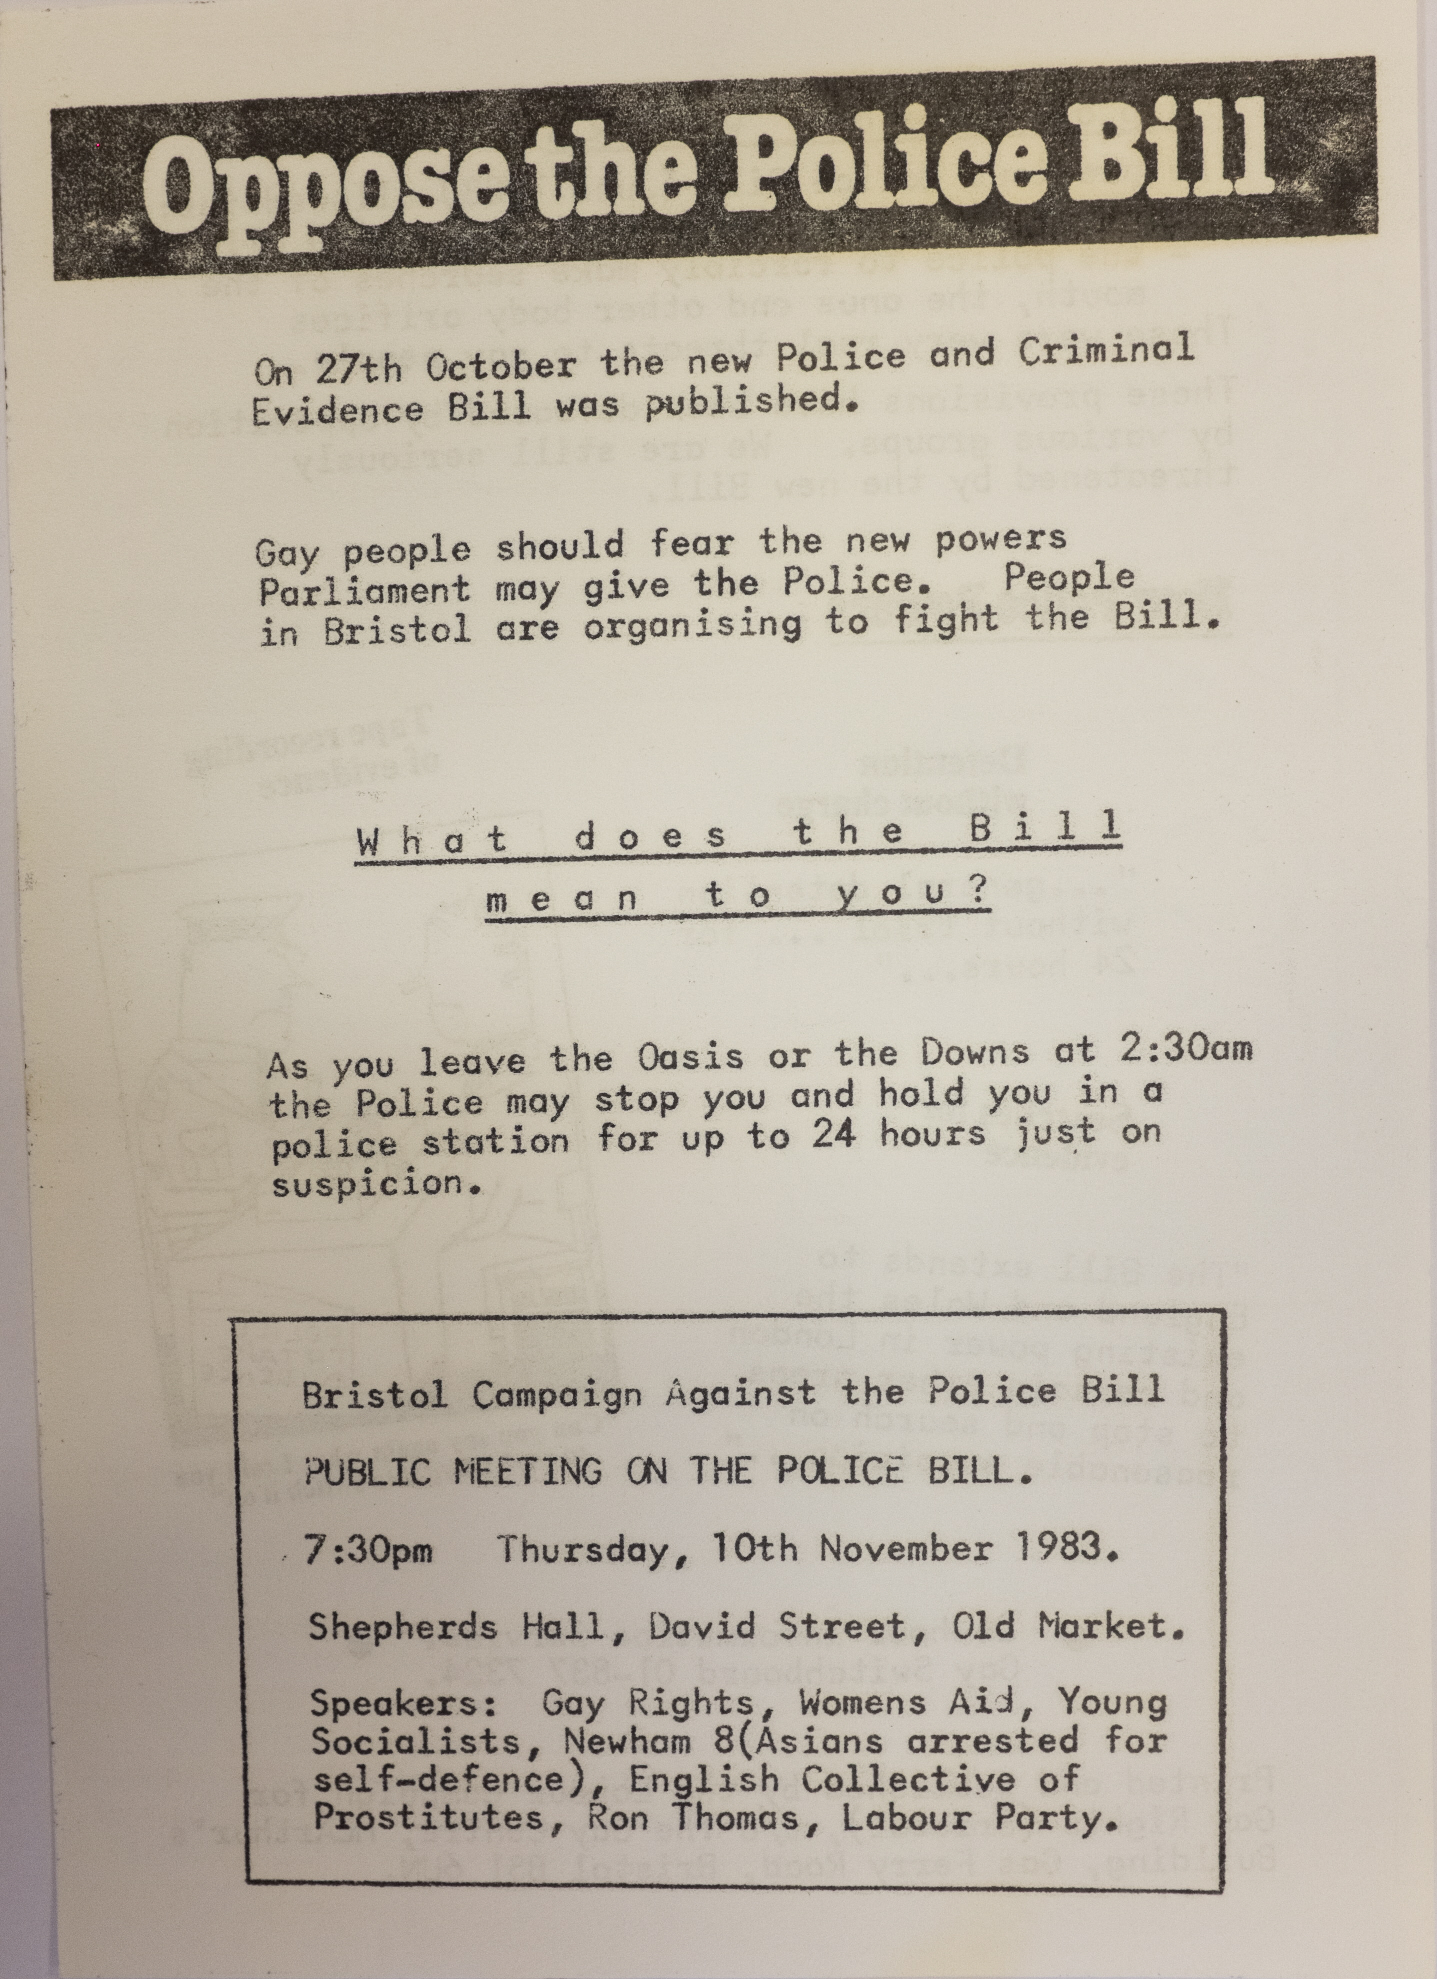 The front of a flyer with the heading 'Oppose the Police Bill'.